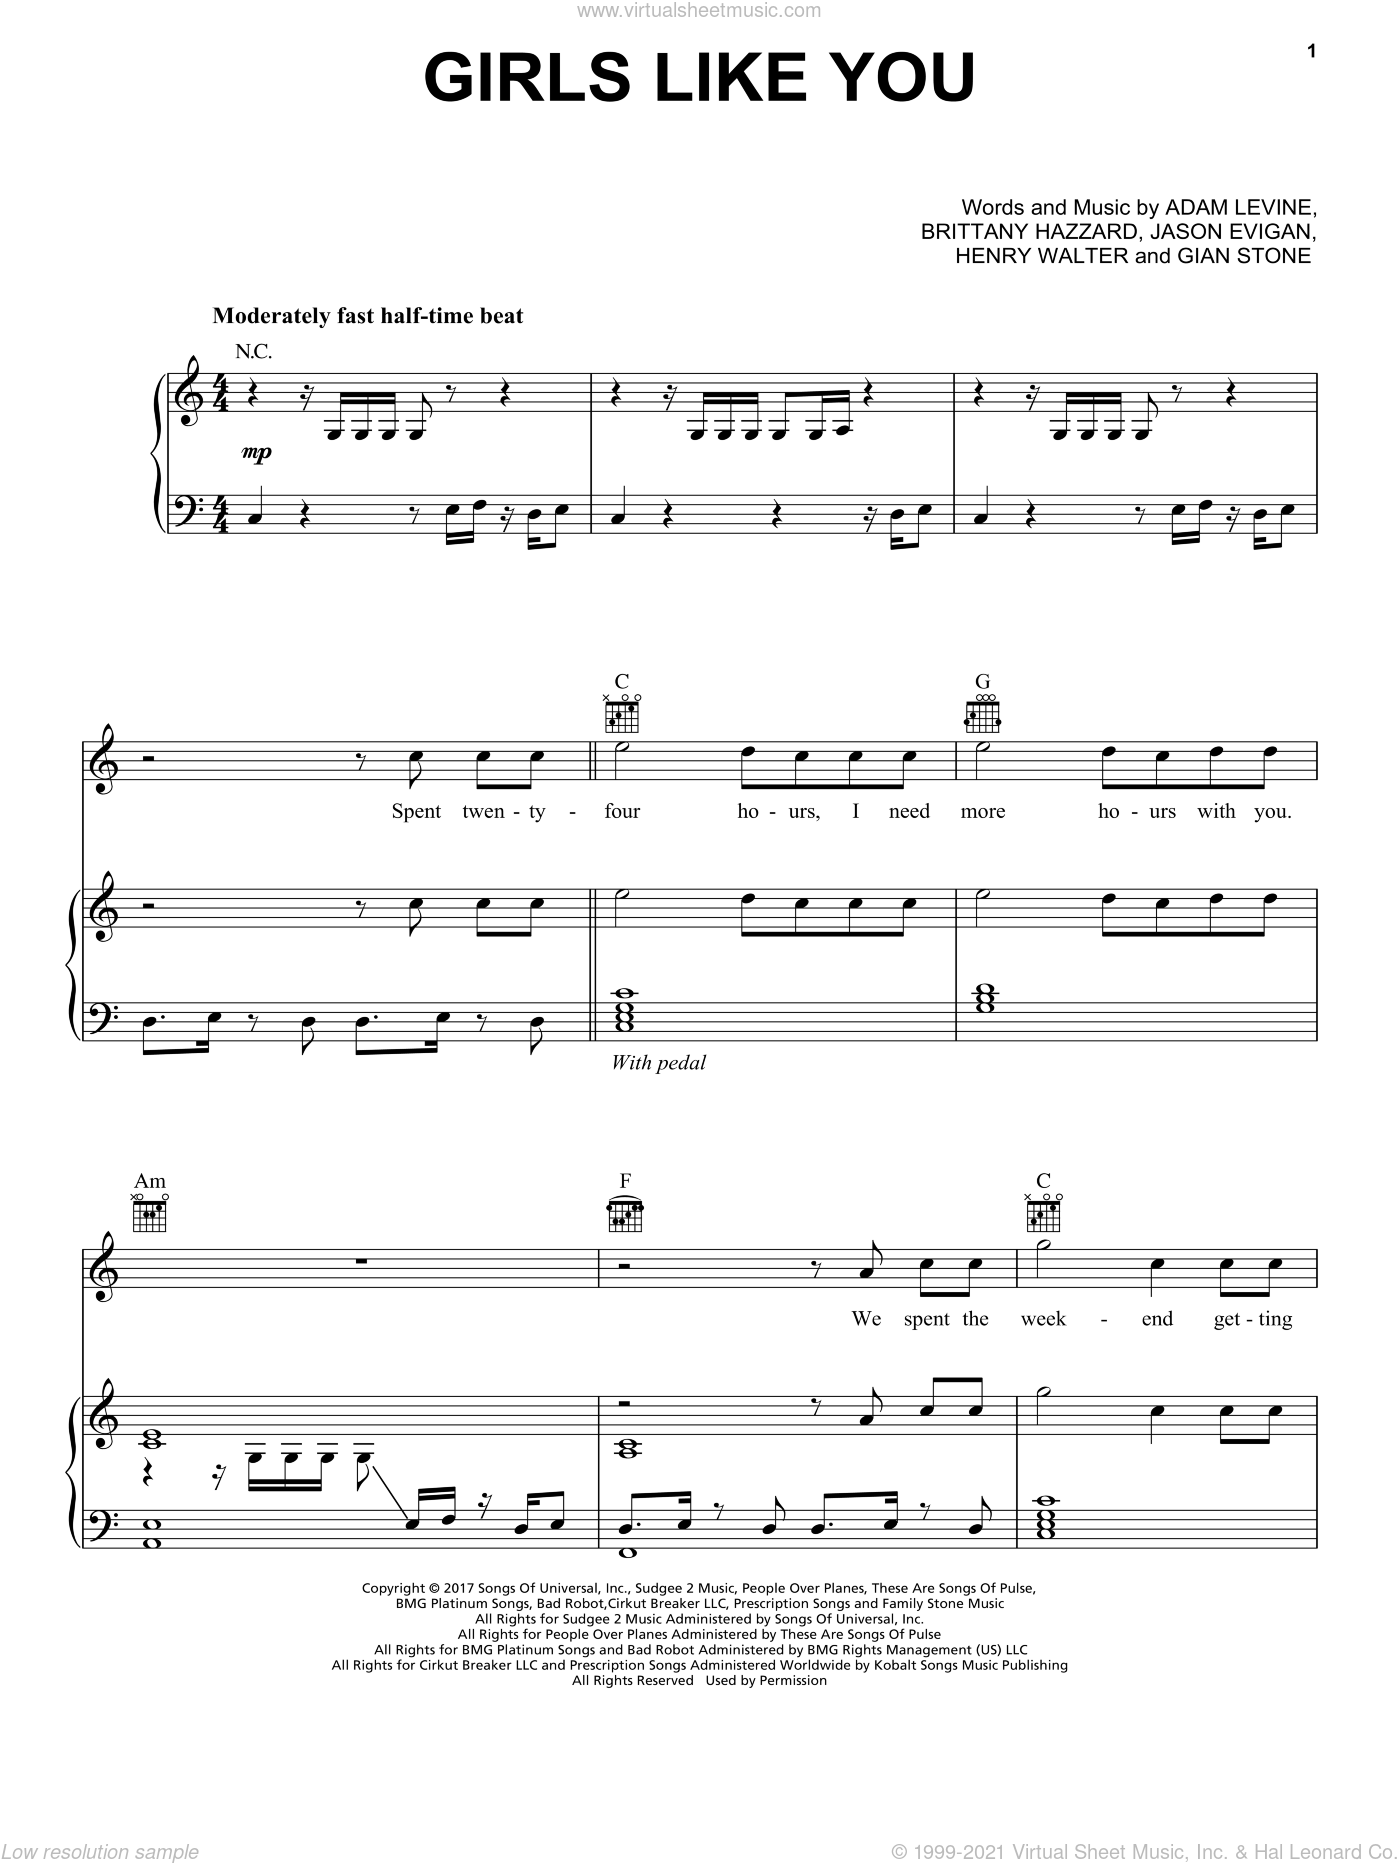 Girls Like You sheet music for voice, piano or guitar by Maroon 5, Adam Levine, Henry Walter, Jason Evigan and Starrah, intermediate